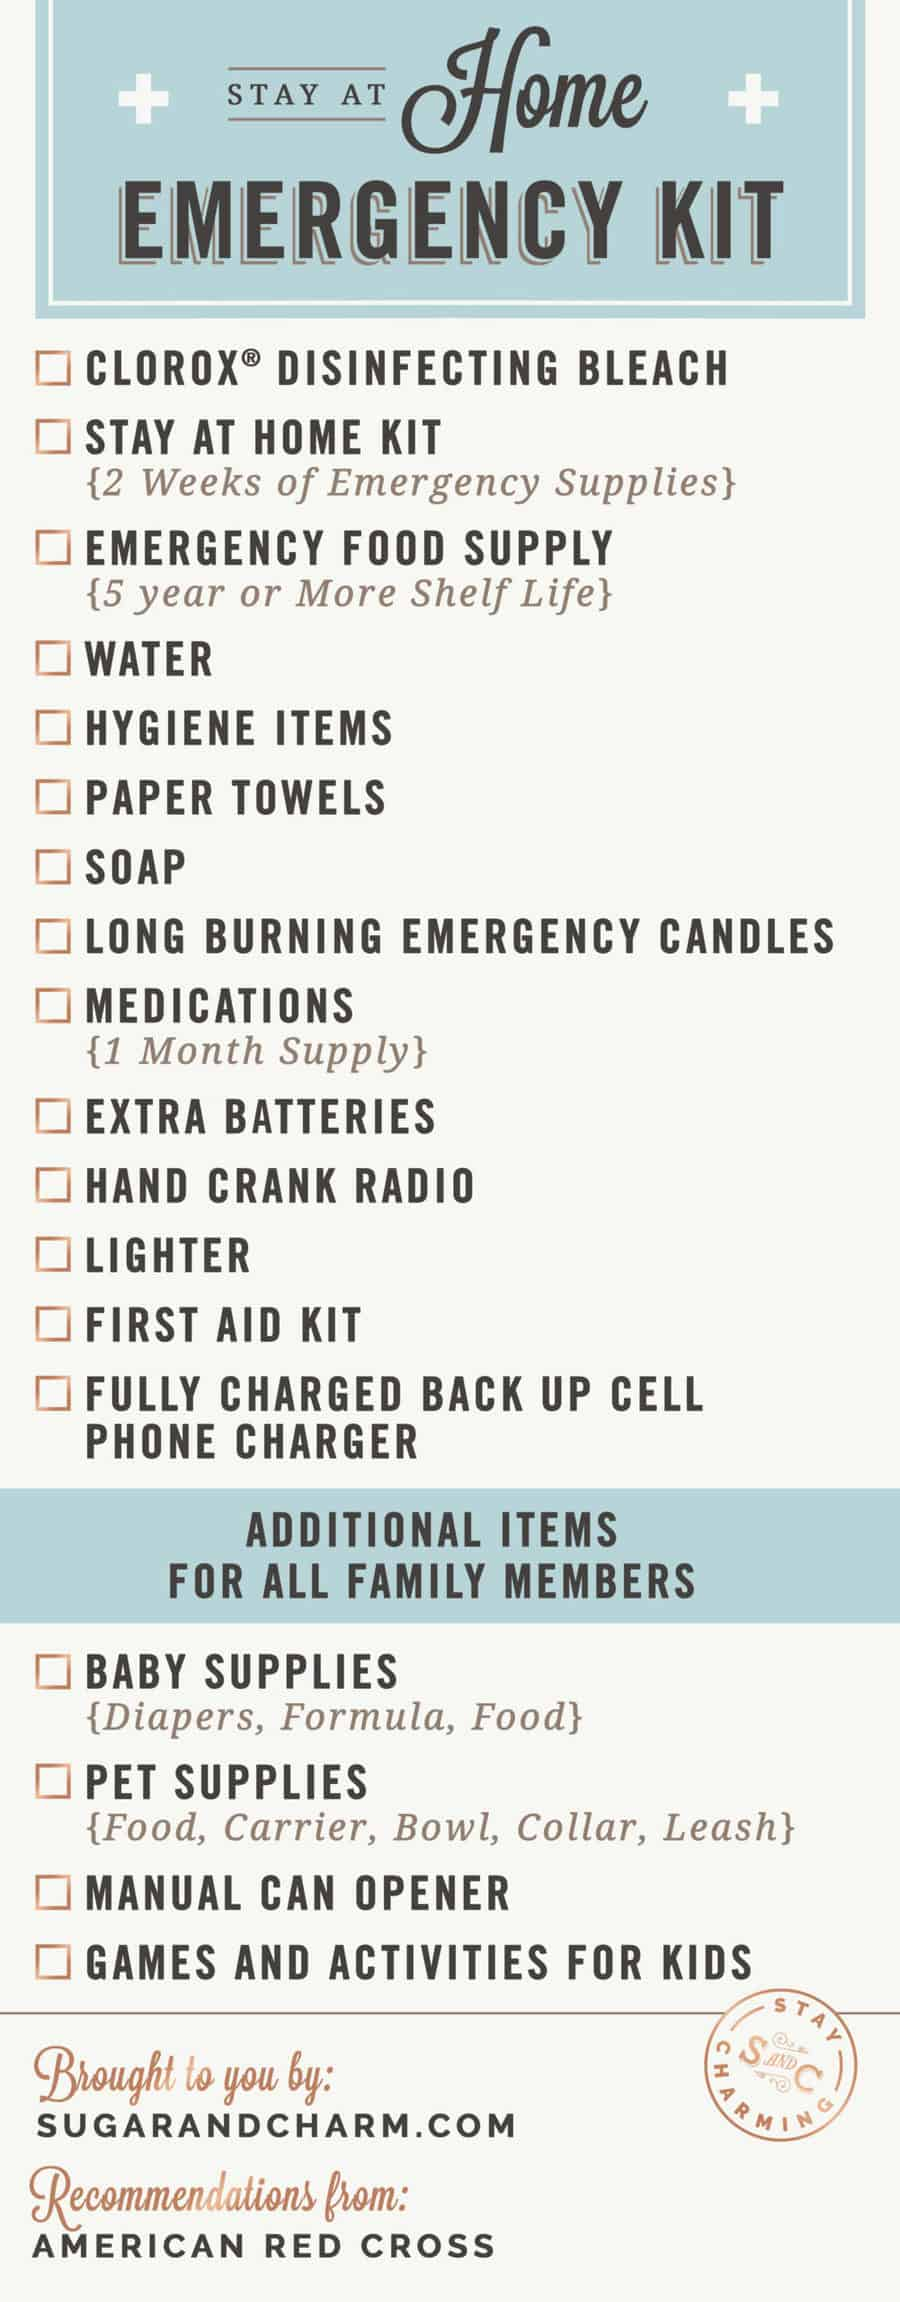 list of items for evacuation kit